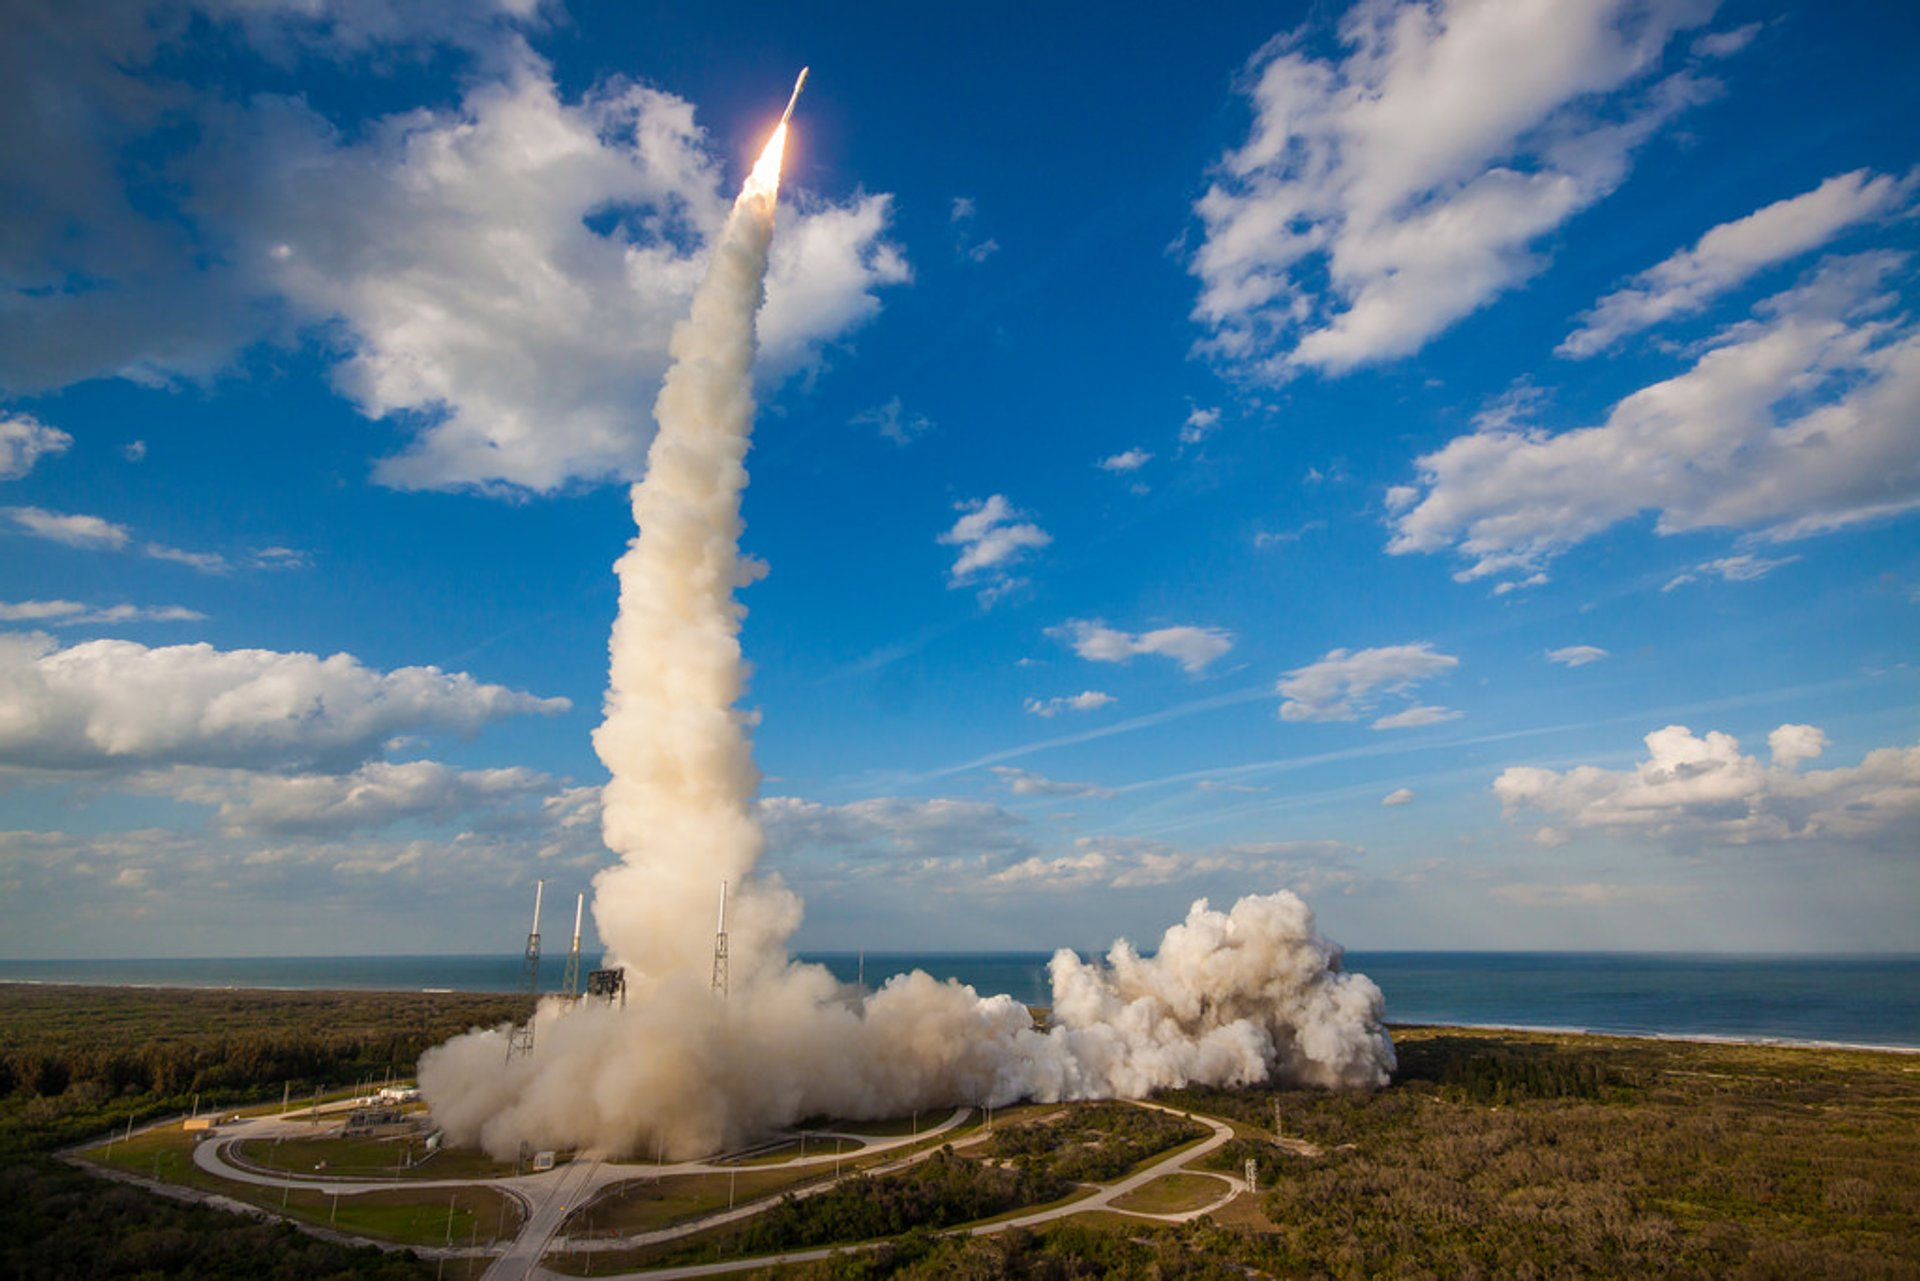 Kennedy Space Center Launch Schedule 2019 Best time for Rocket Launch at Kennedy Space Center in Florida